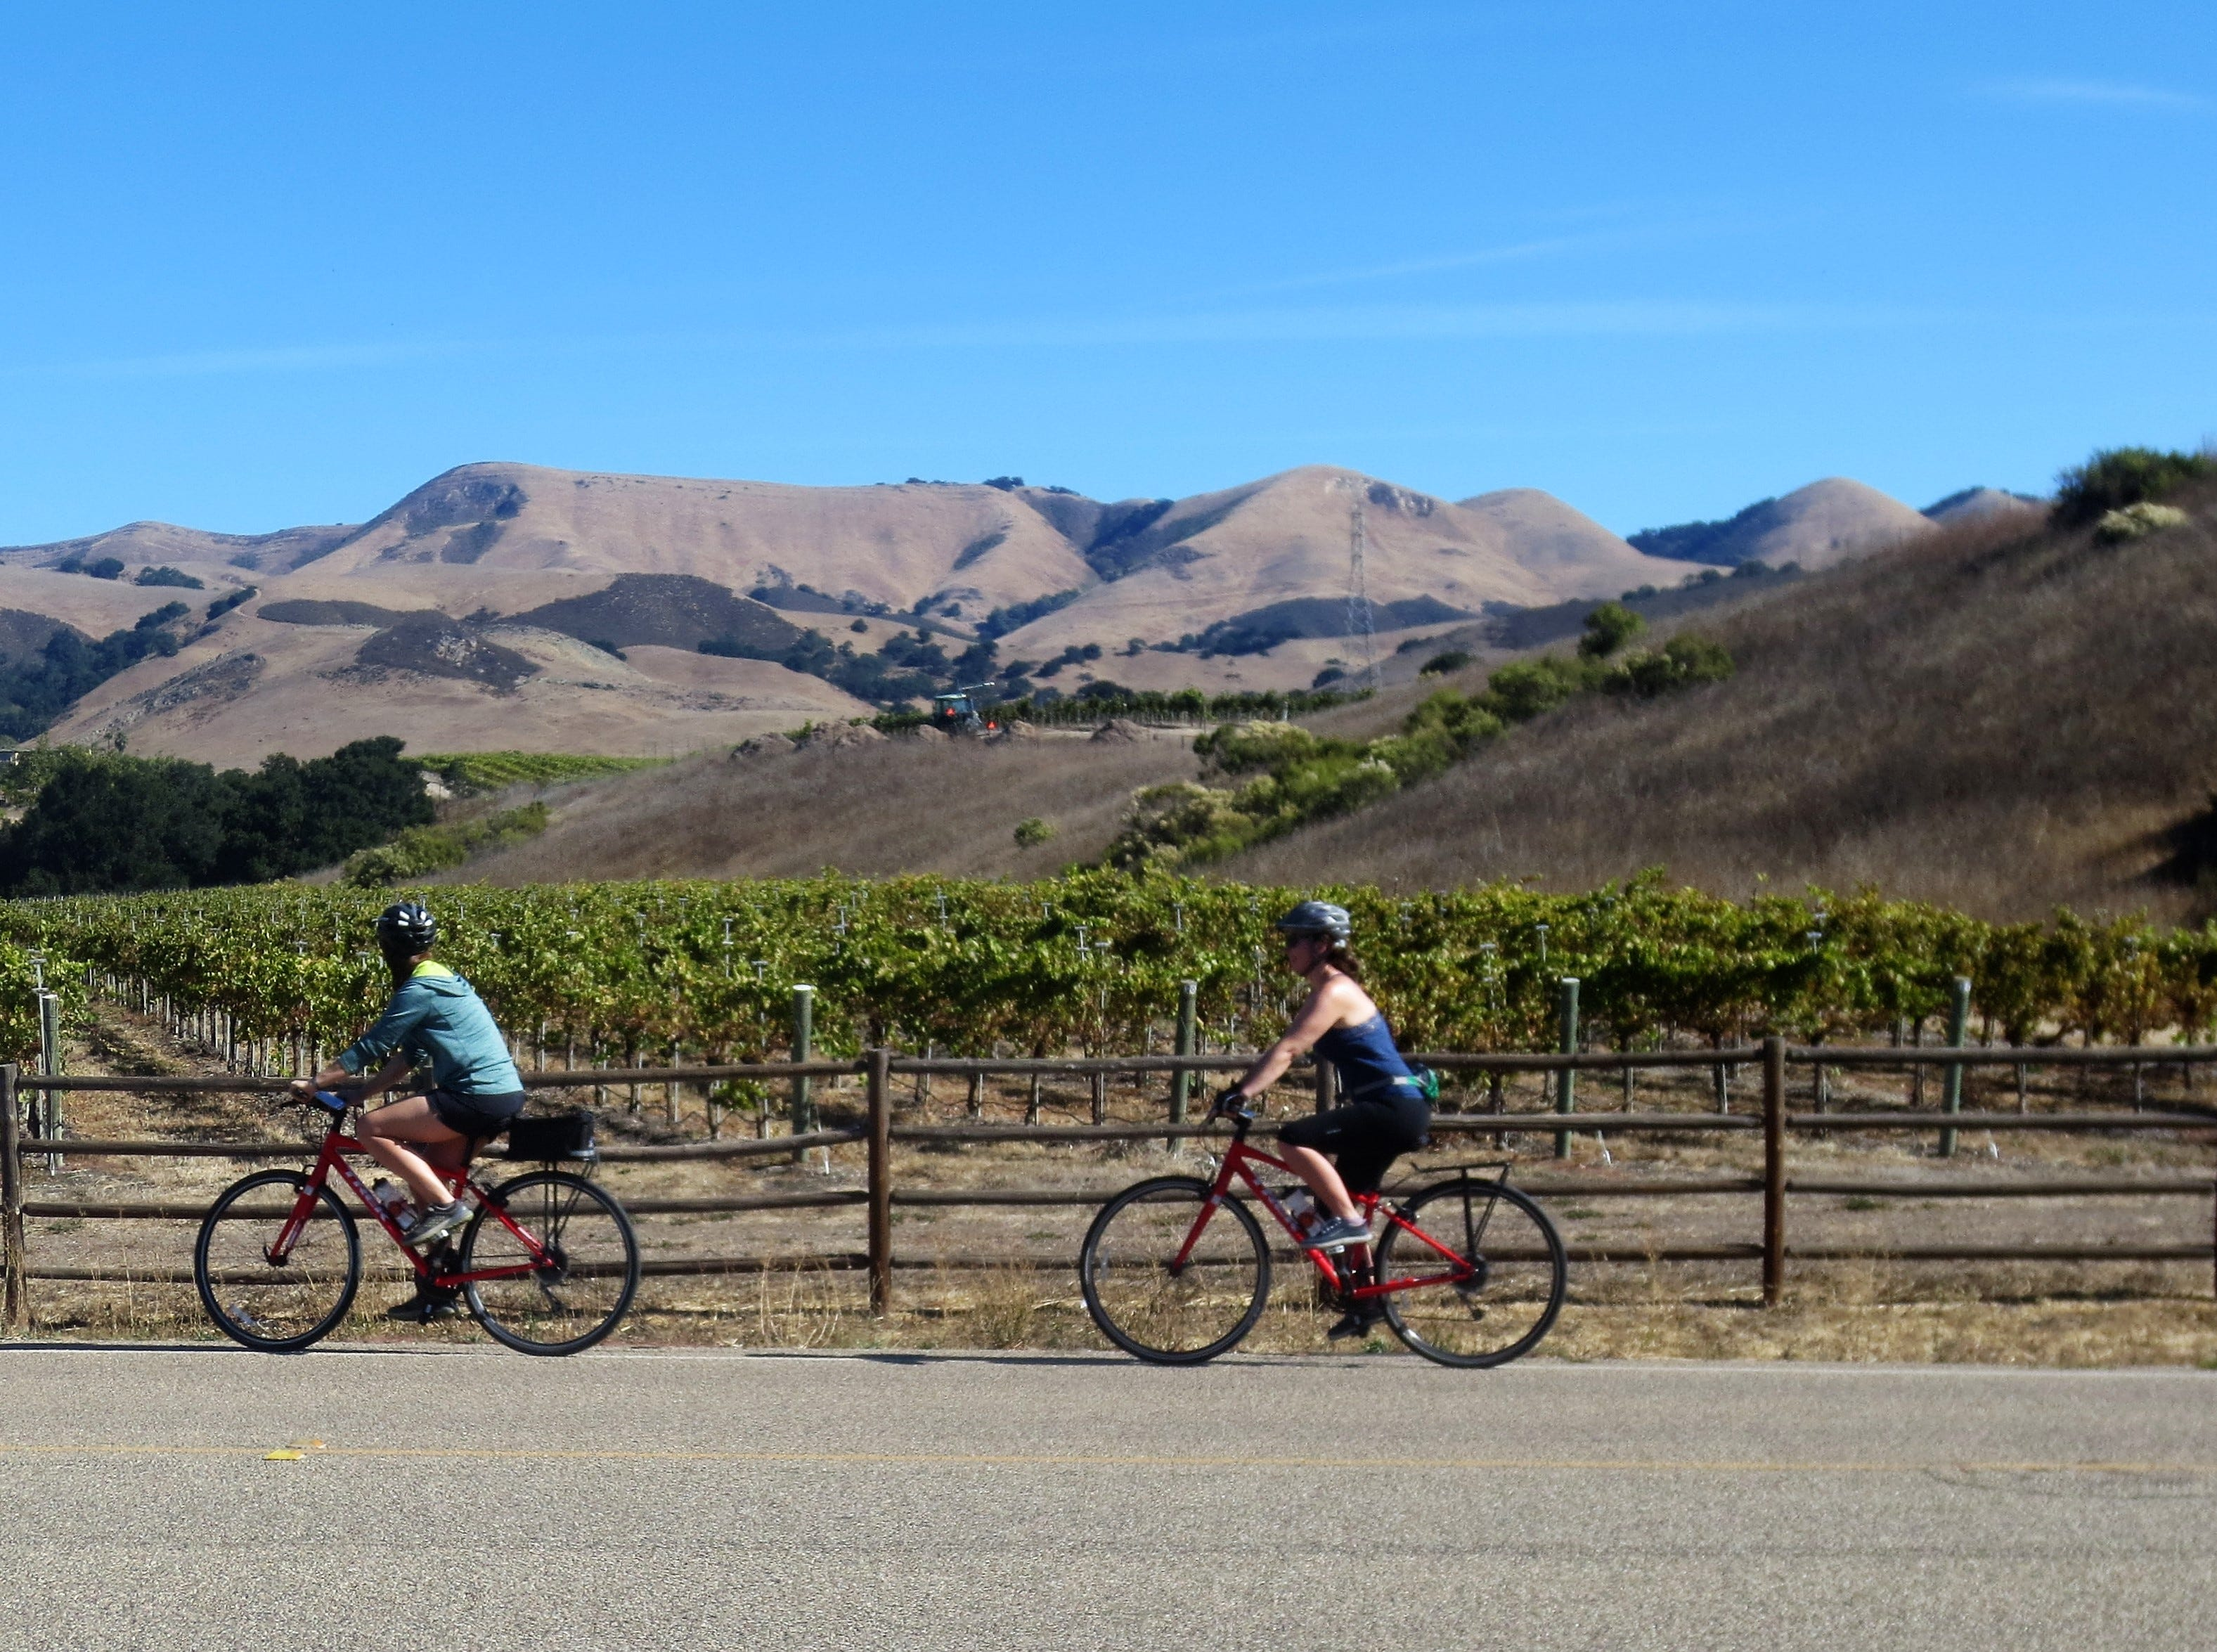 Cyclists on a bike and wine tour in the Edna Valley of San Luis Obispo County, California.